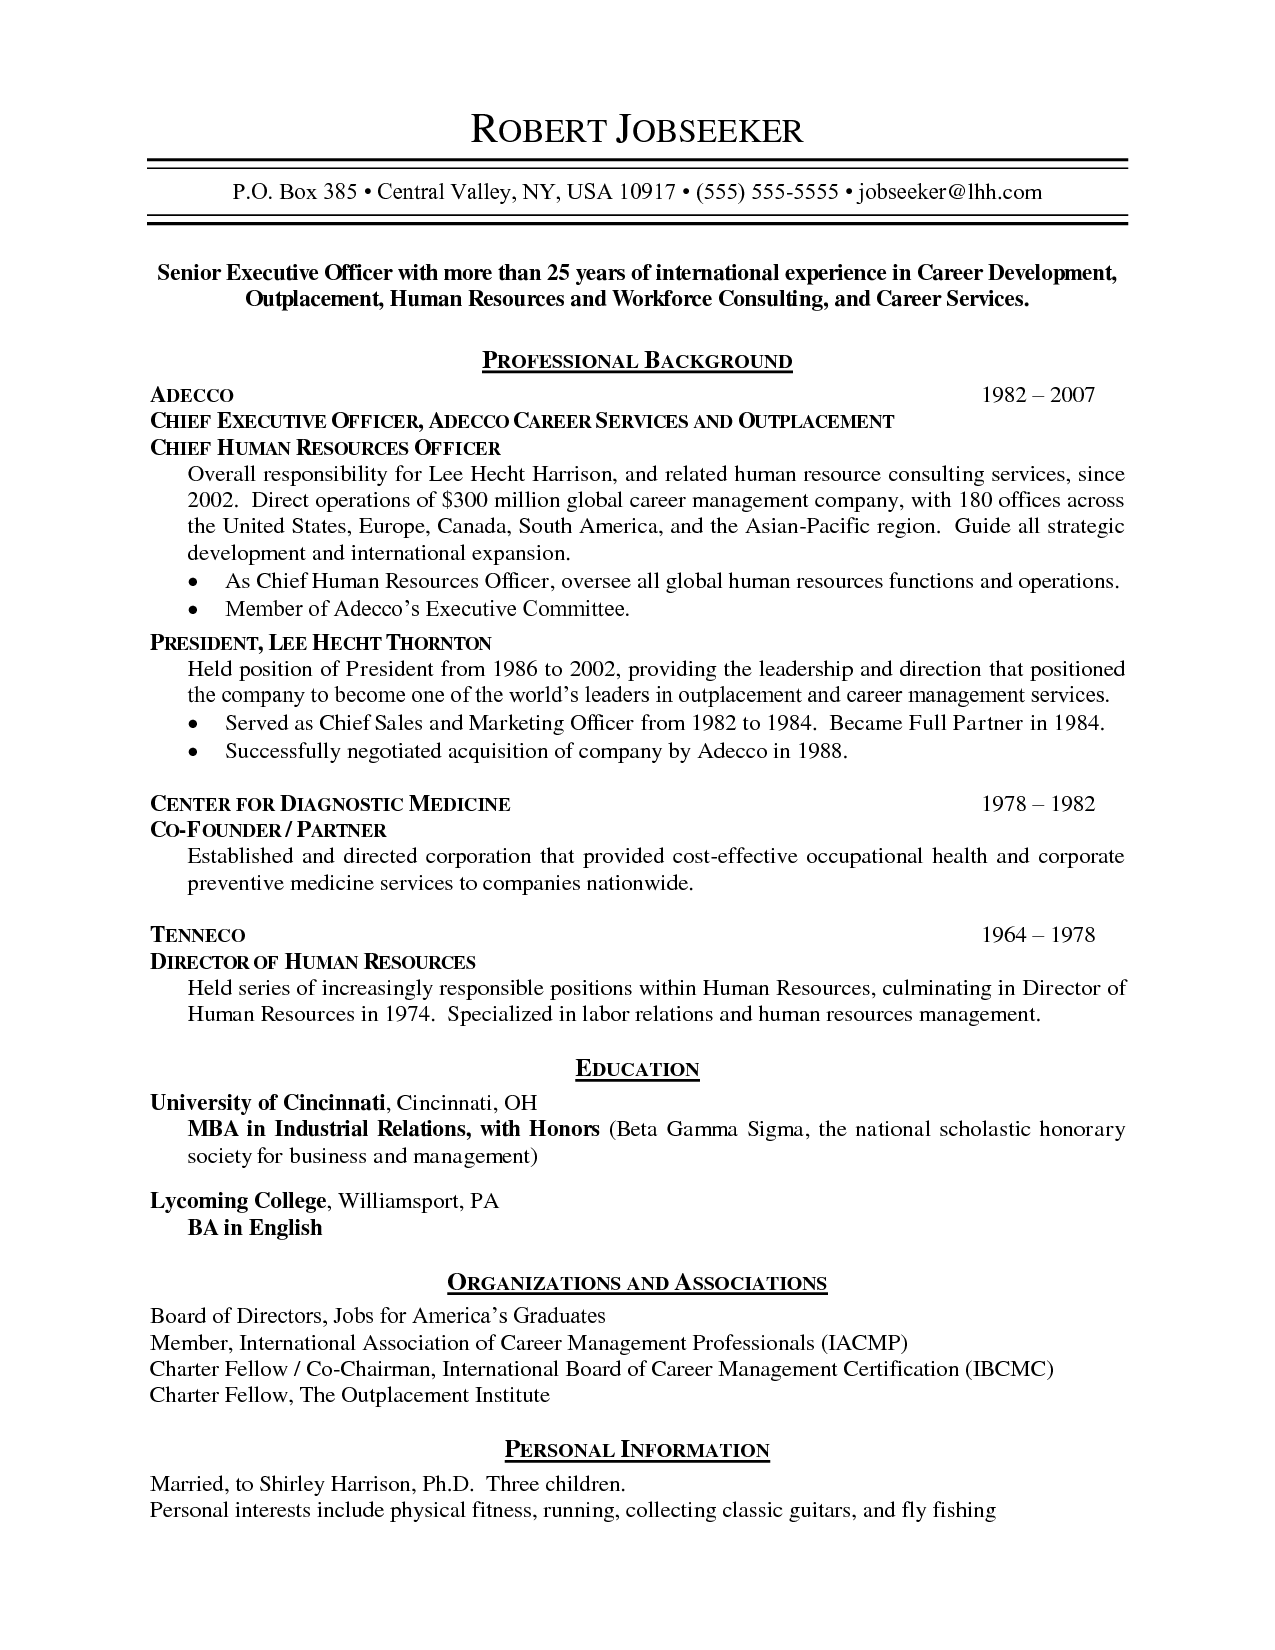 Not Chronological Chronological resume, Chronological